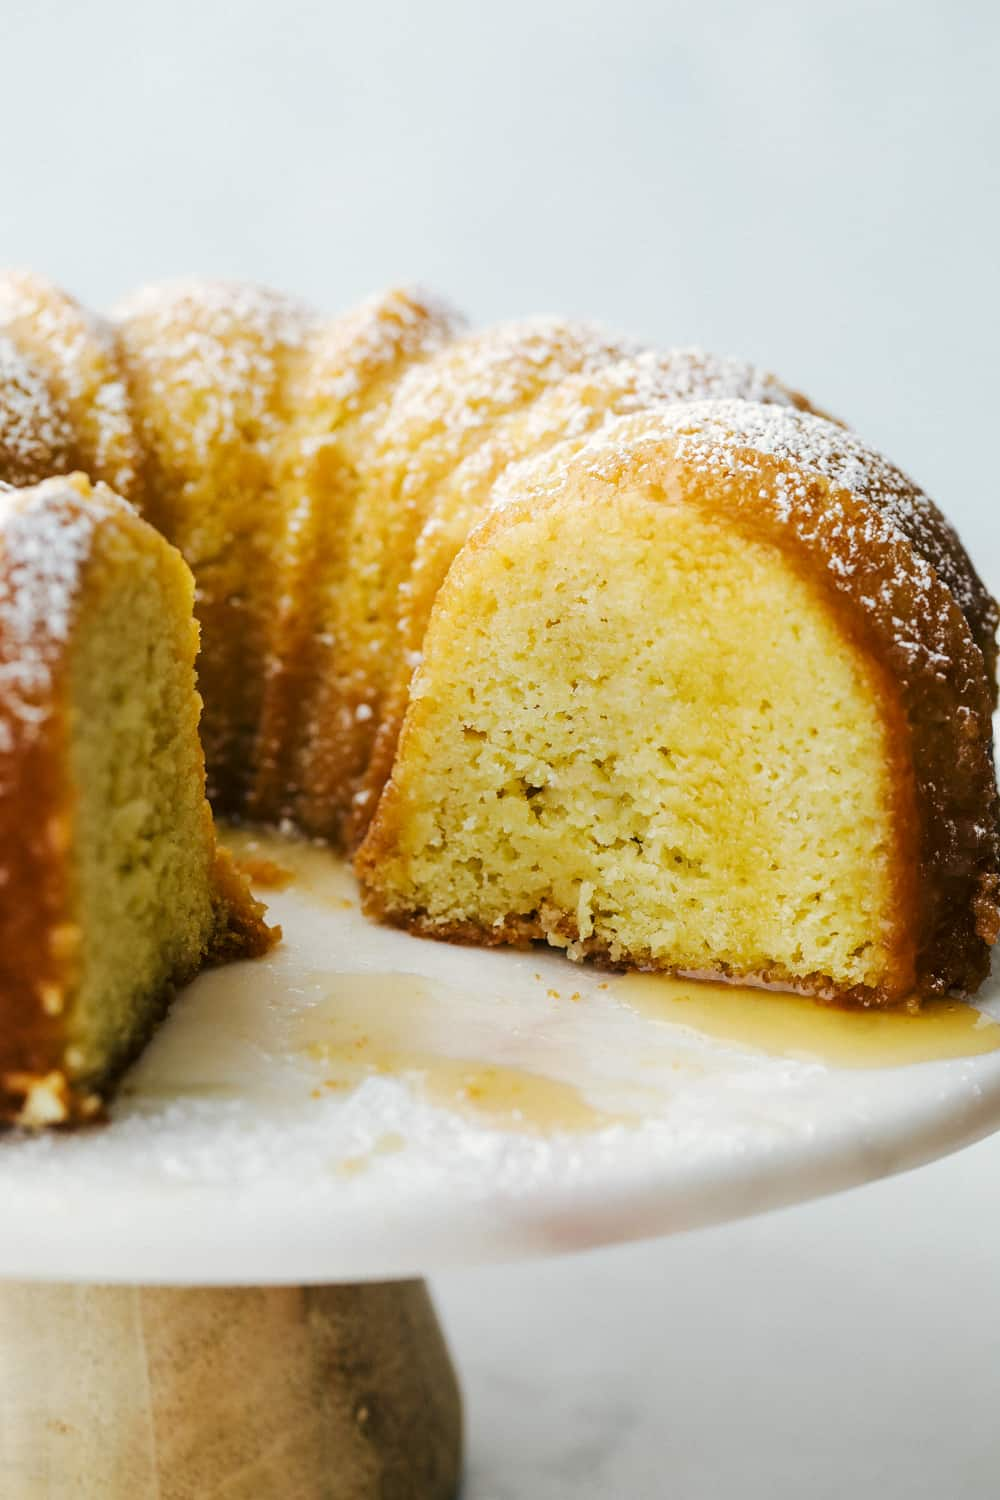 Kentucky Butter Cake with drizzle on a plate.